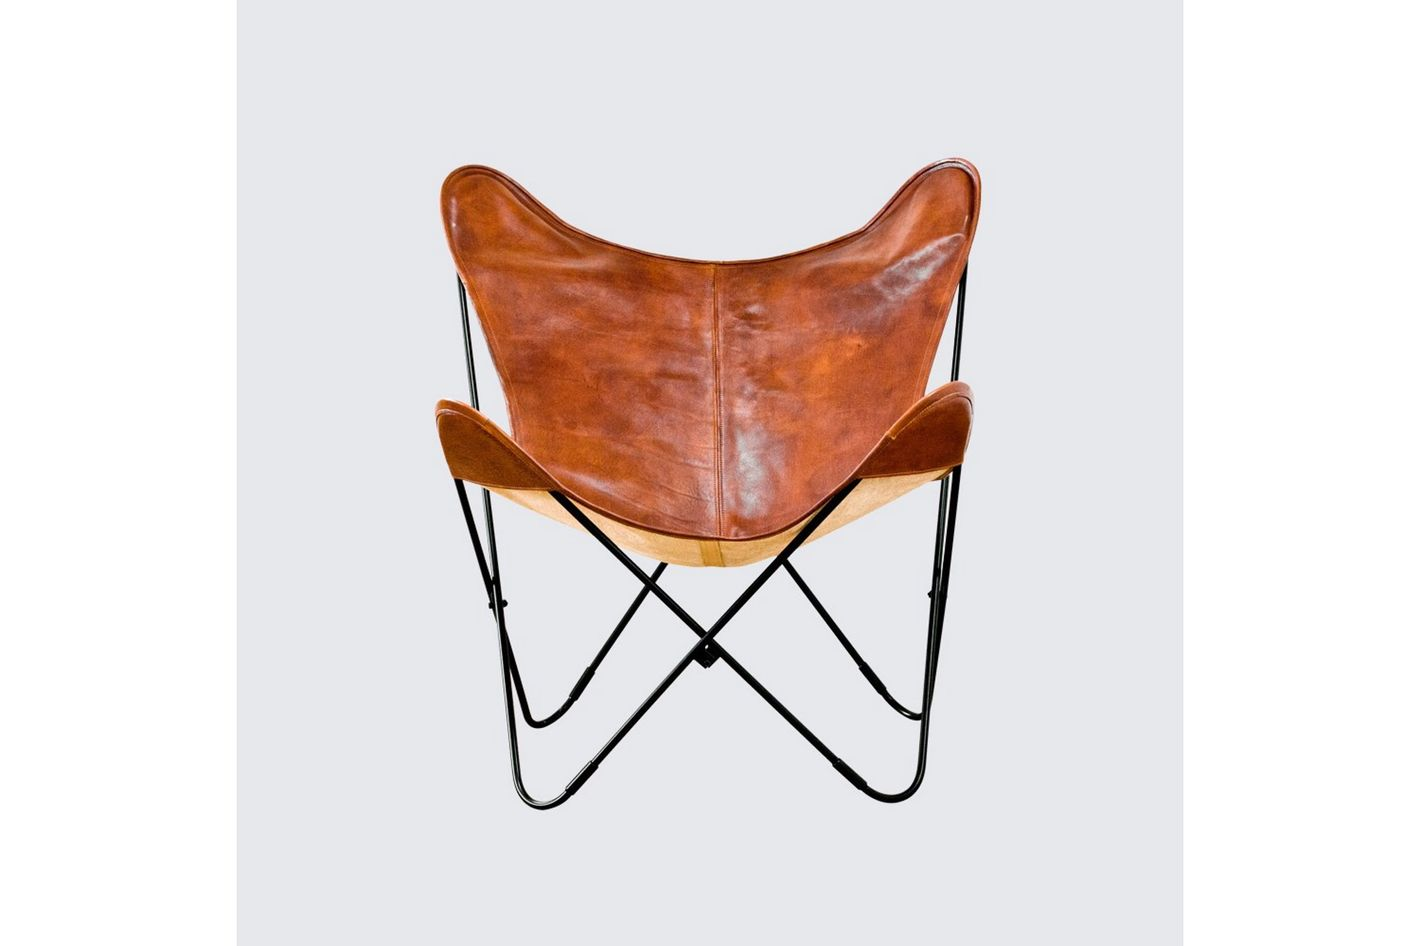 Palermo Butterfly Chair by the Citizenry